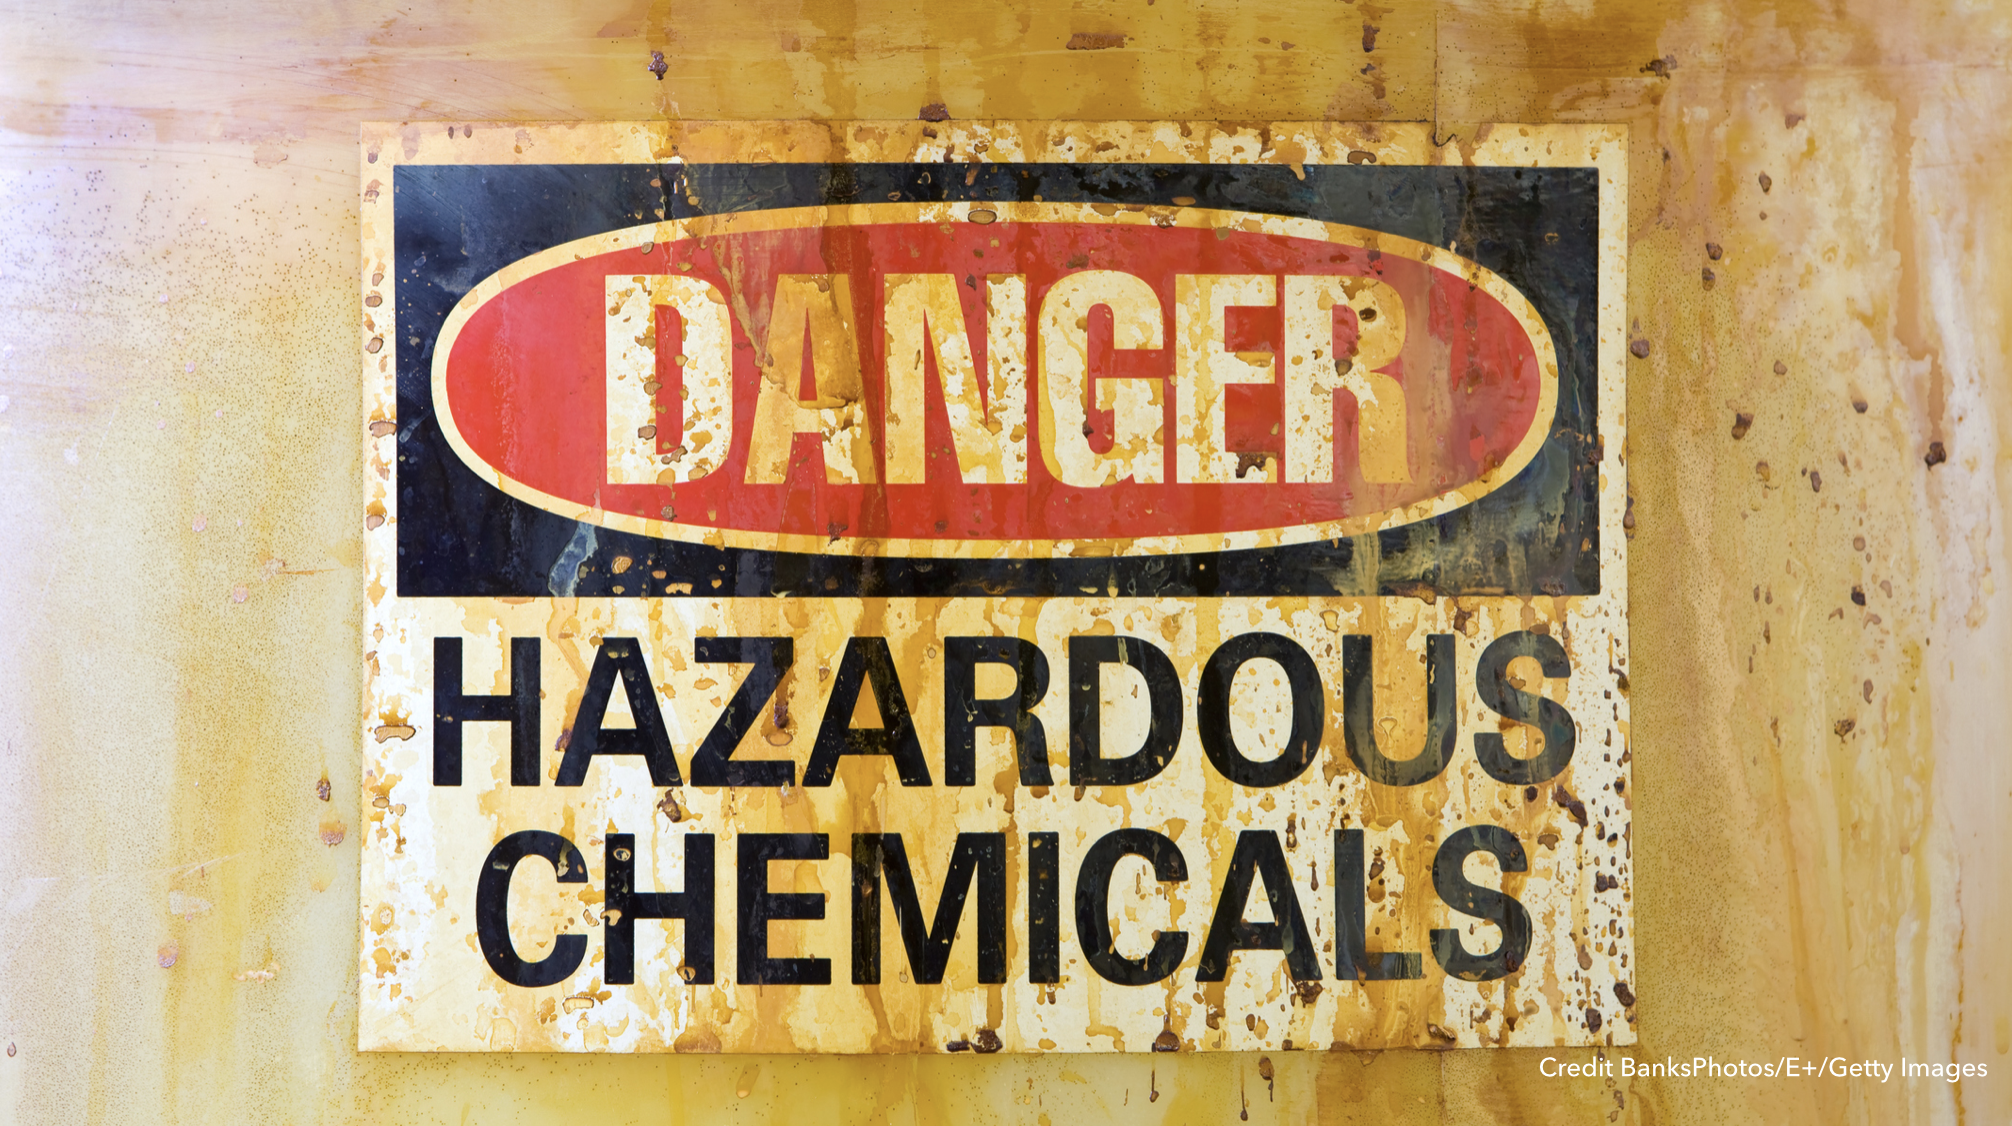 Image: Danger. Hazardous chemicals.